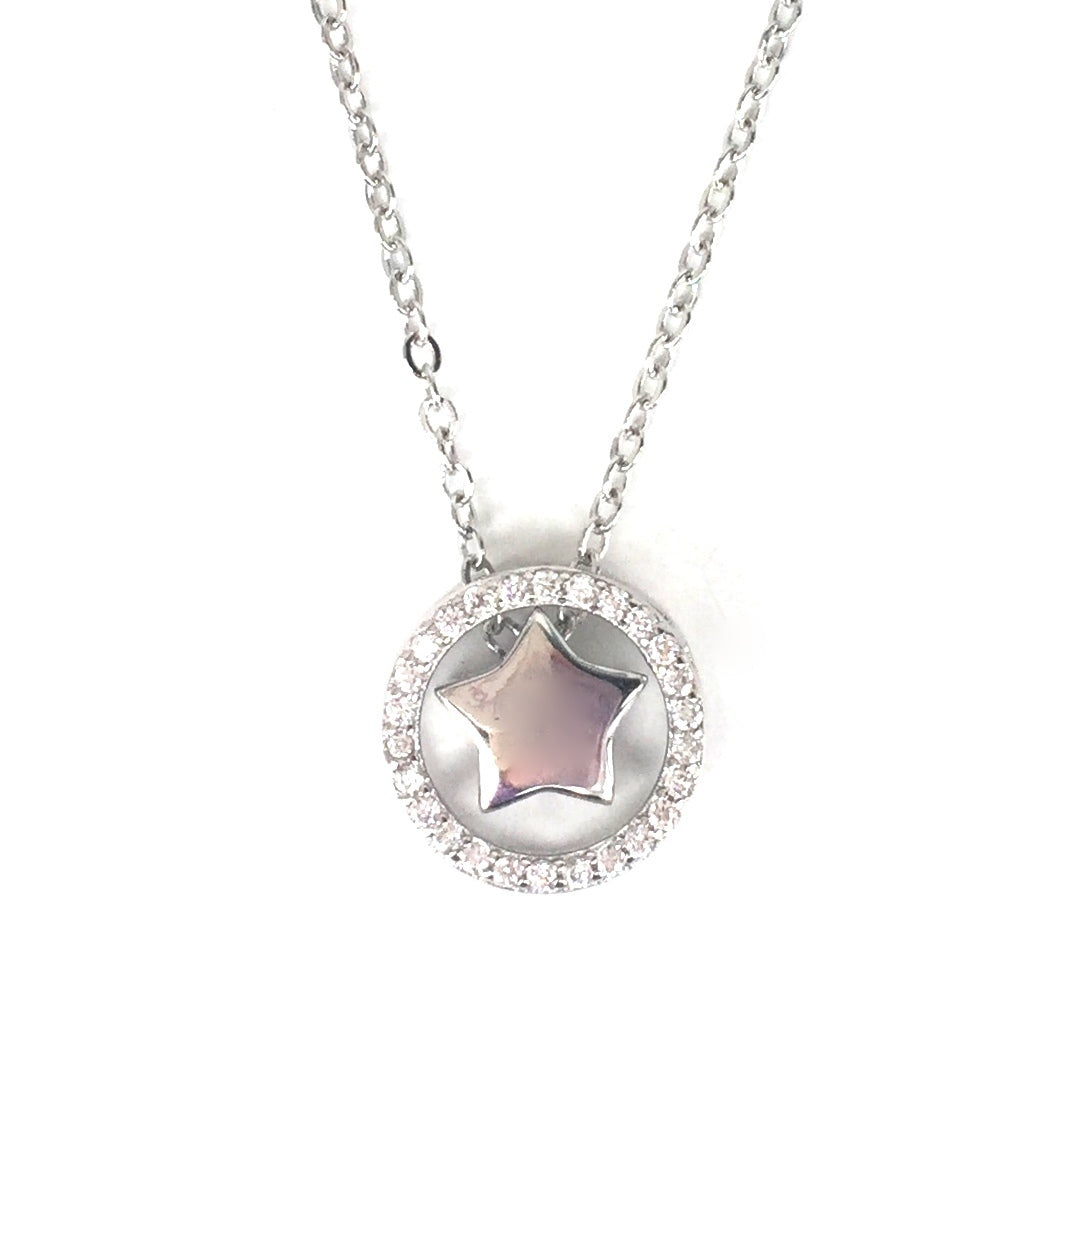 STAR IN CIRCLE PAVE CZ STERLING SILVER NECKLACE